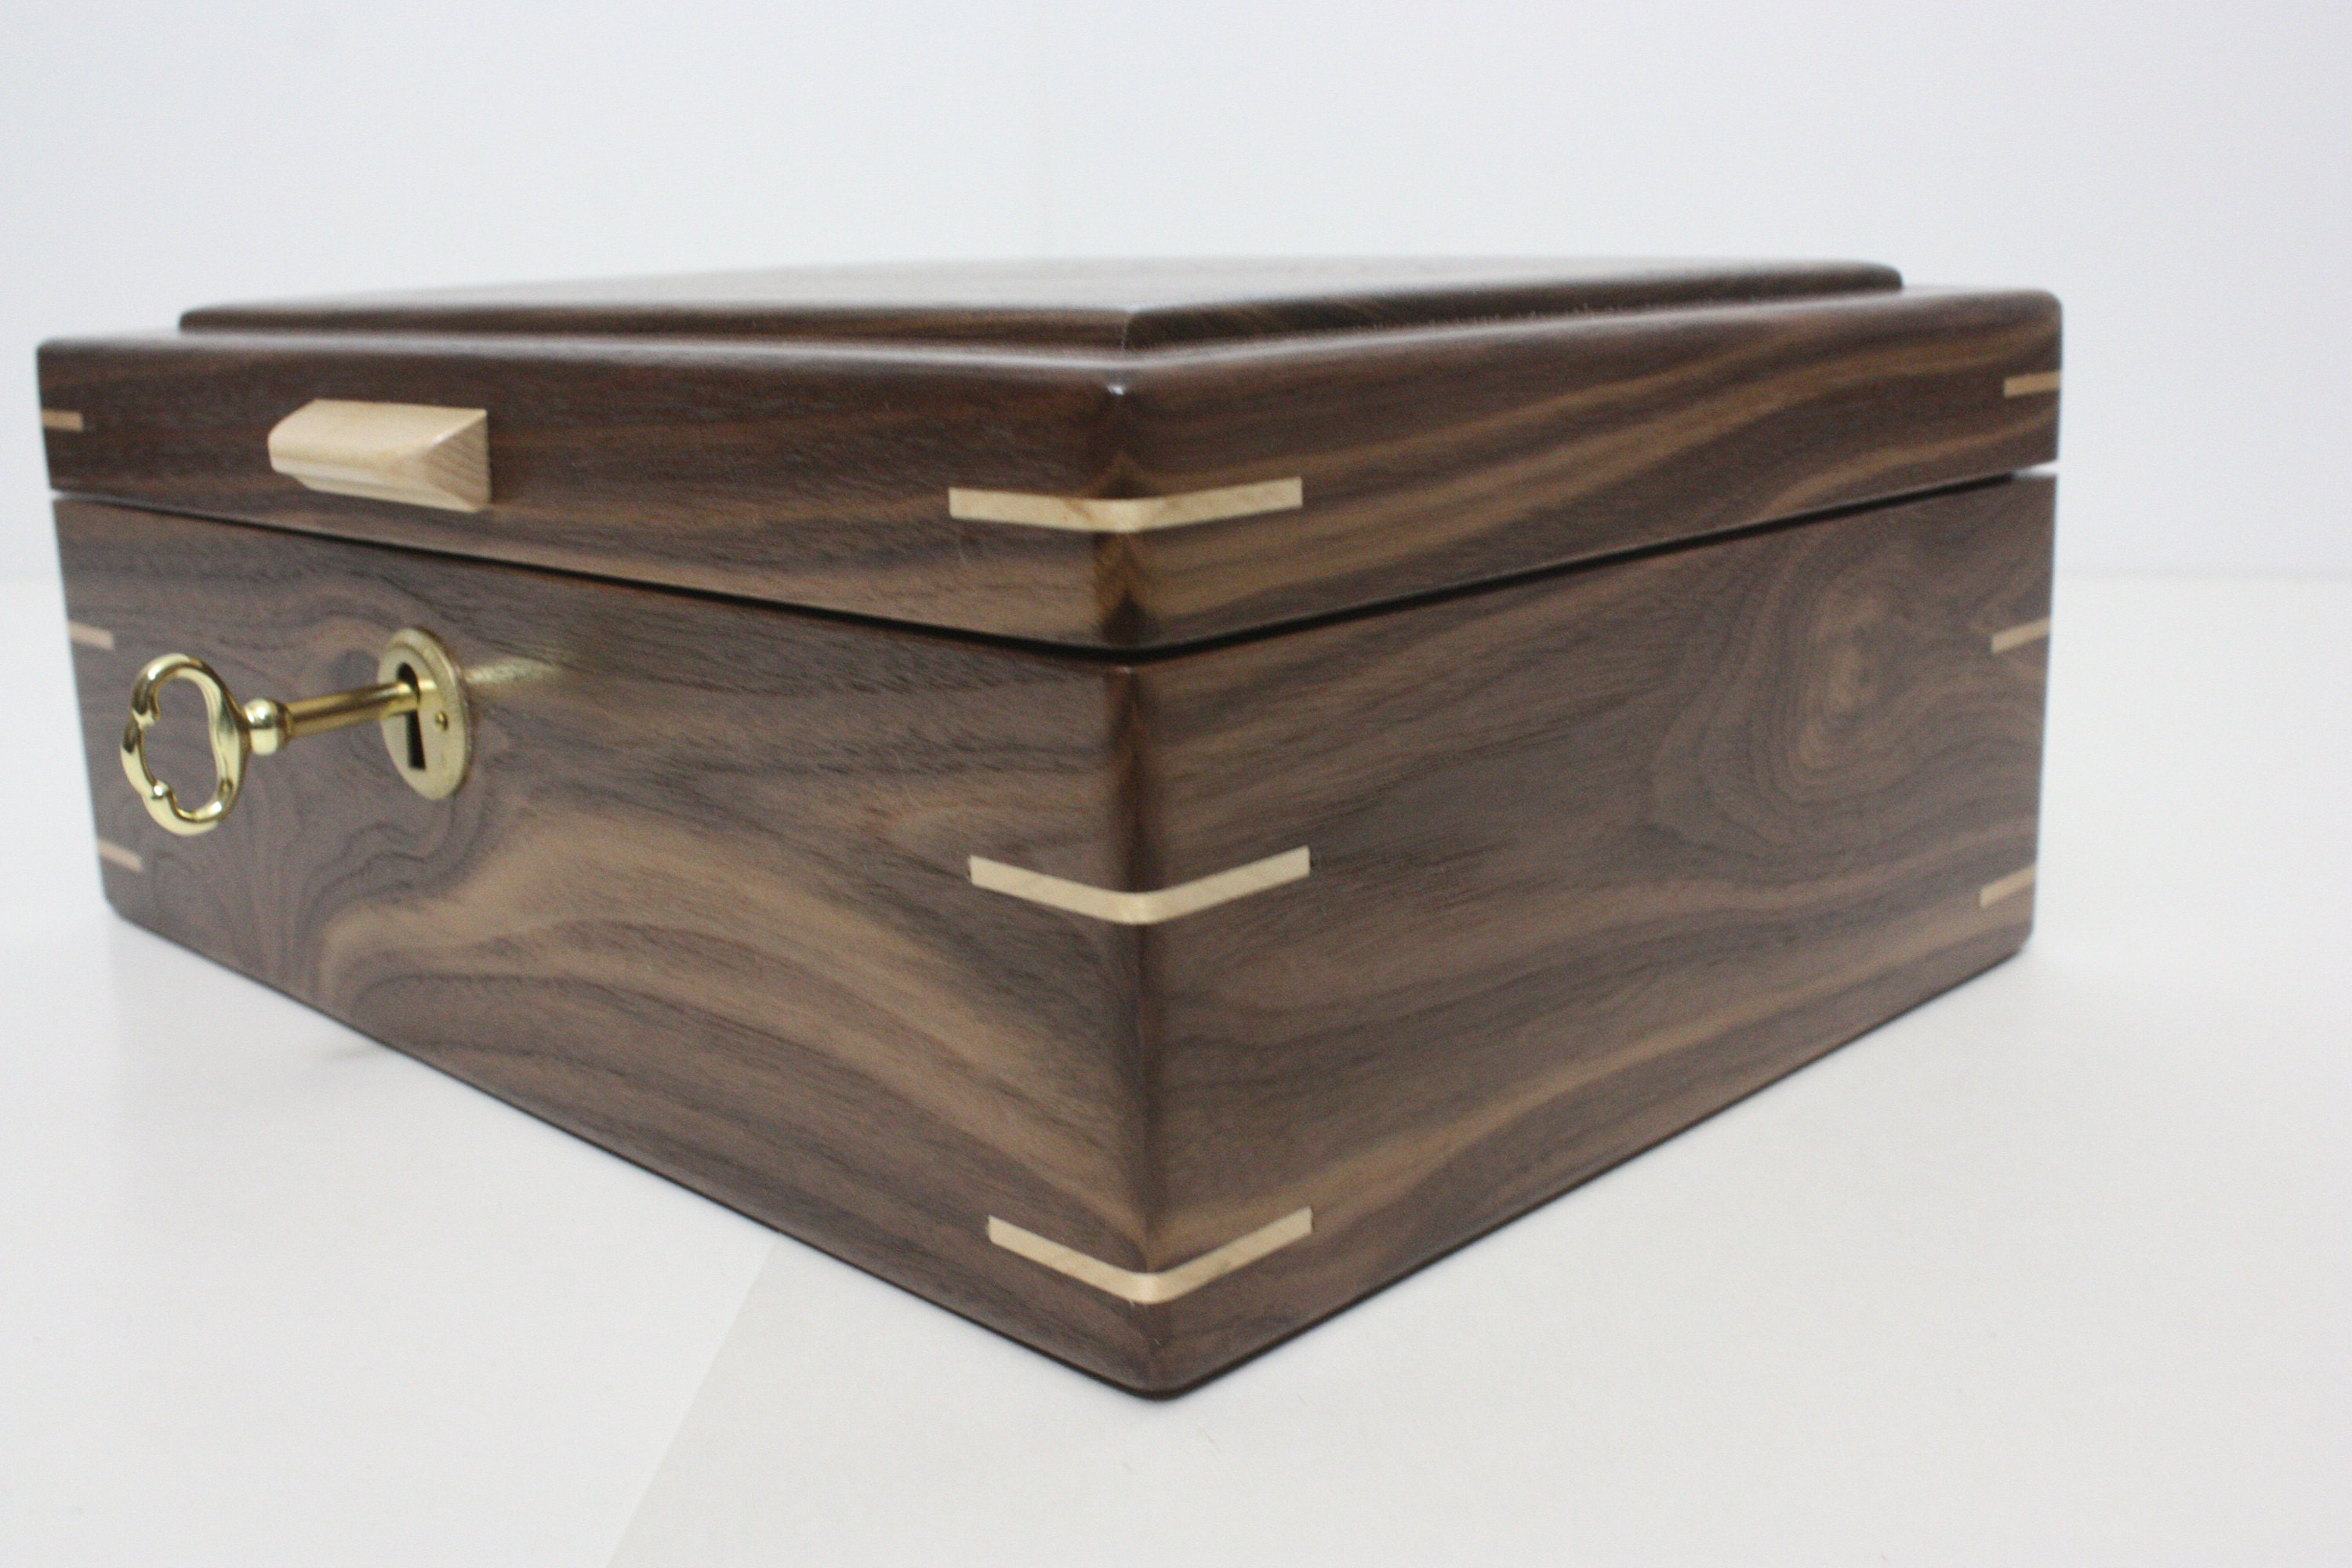 Wood box with Corner Splines